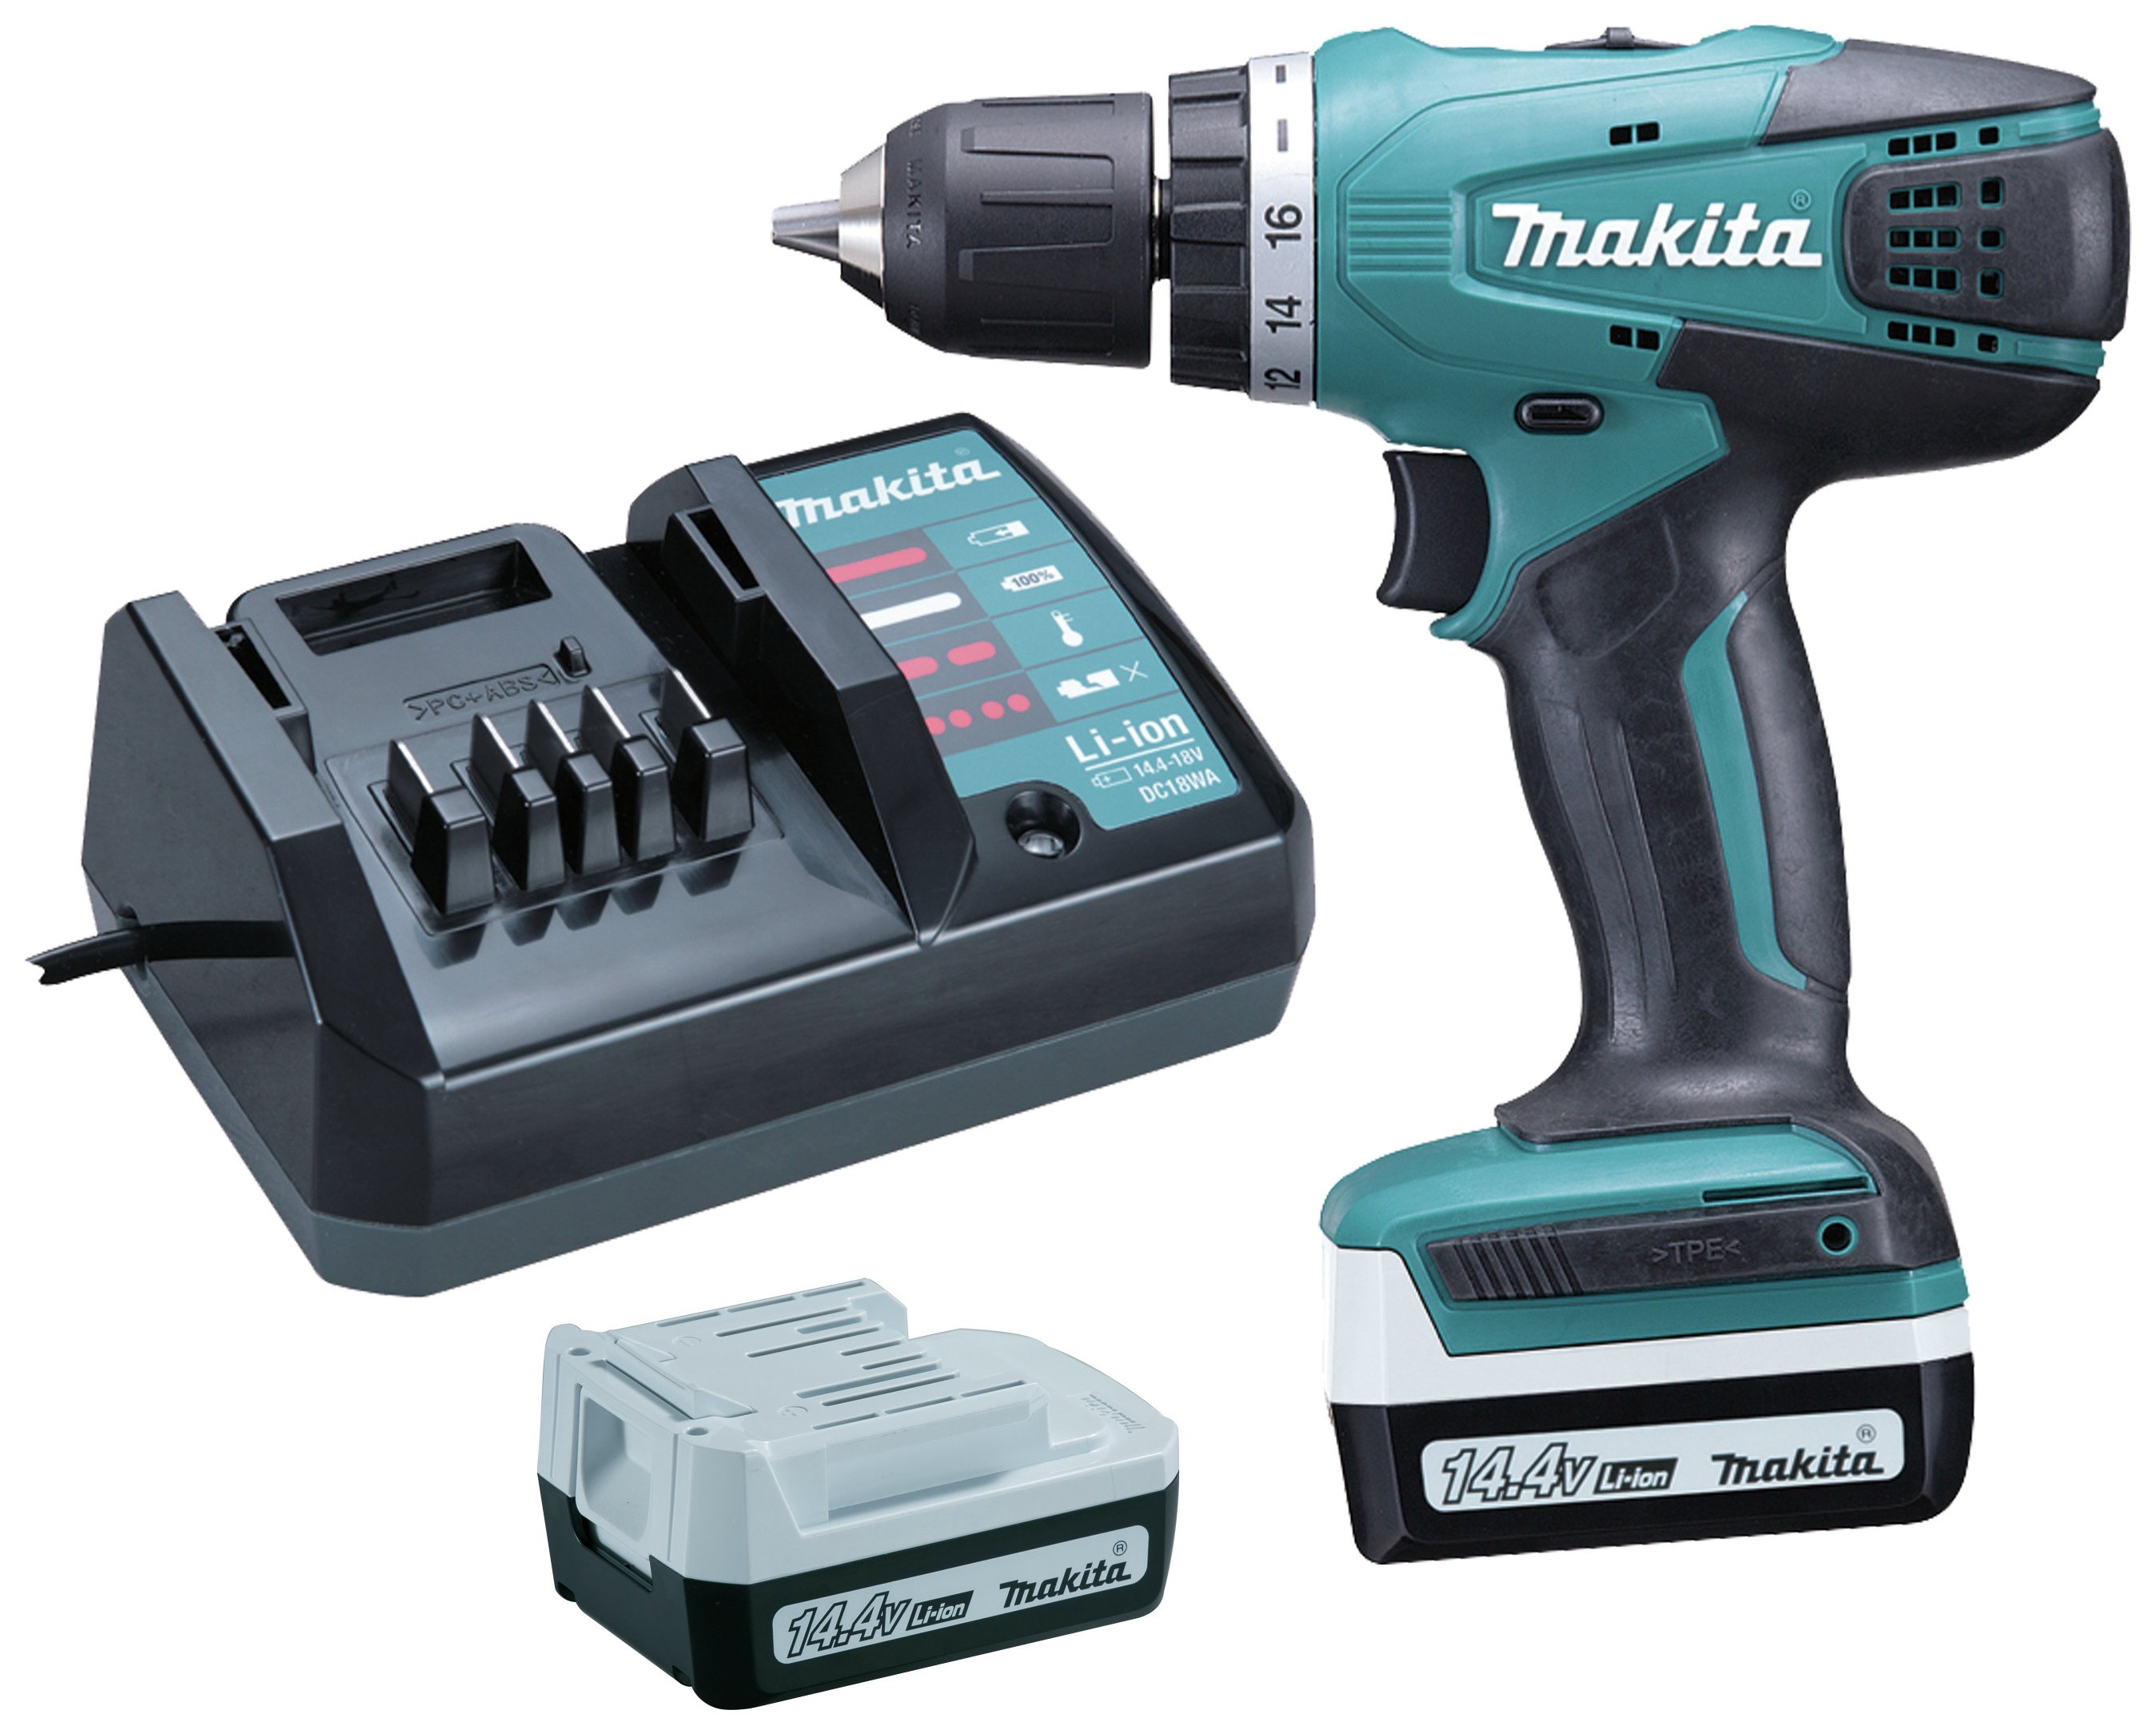 makita battery. makita li-on cordless drill driver with 2 batteries - 14.4v battery